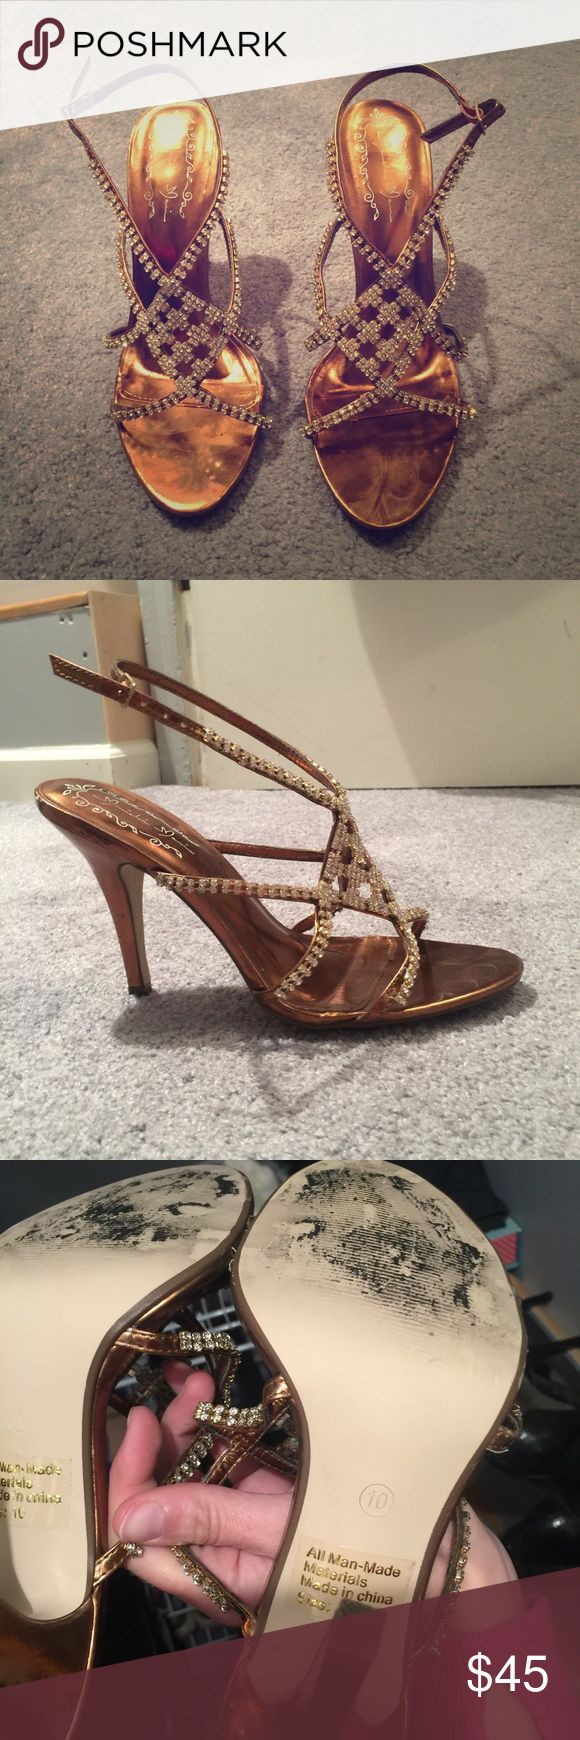 Gold Strap Heel with Jewel Detail. Gold Strap Heel with Jewel Detail. Size 10. Worn once to a wedding. Minor scuffs on the bottom. Shoes Heels